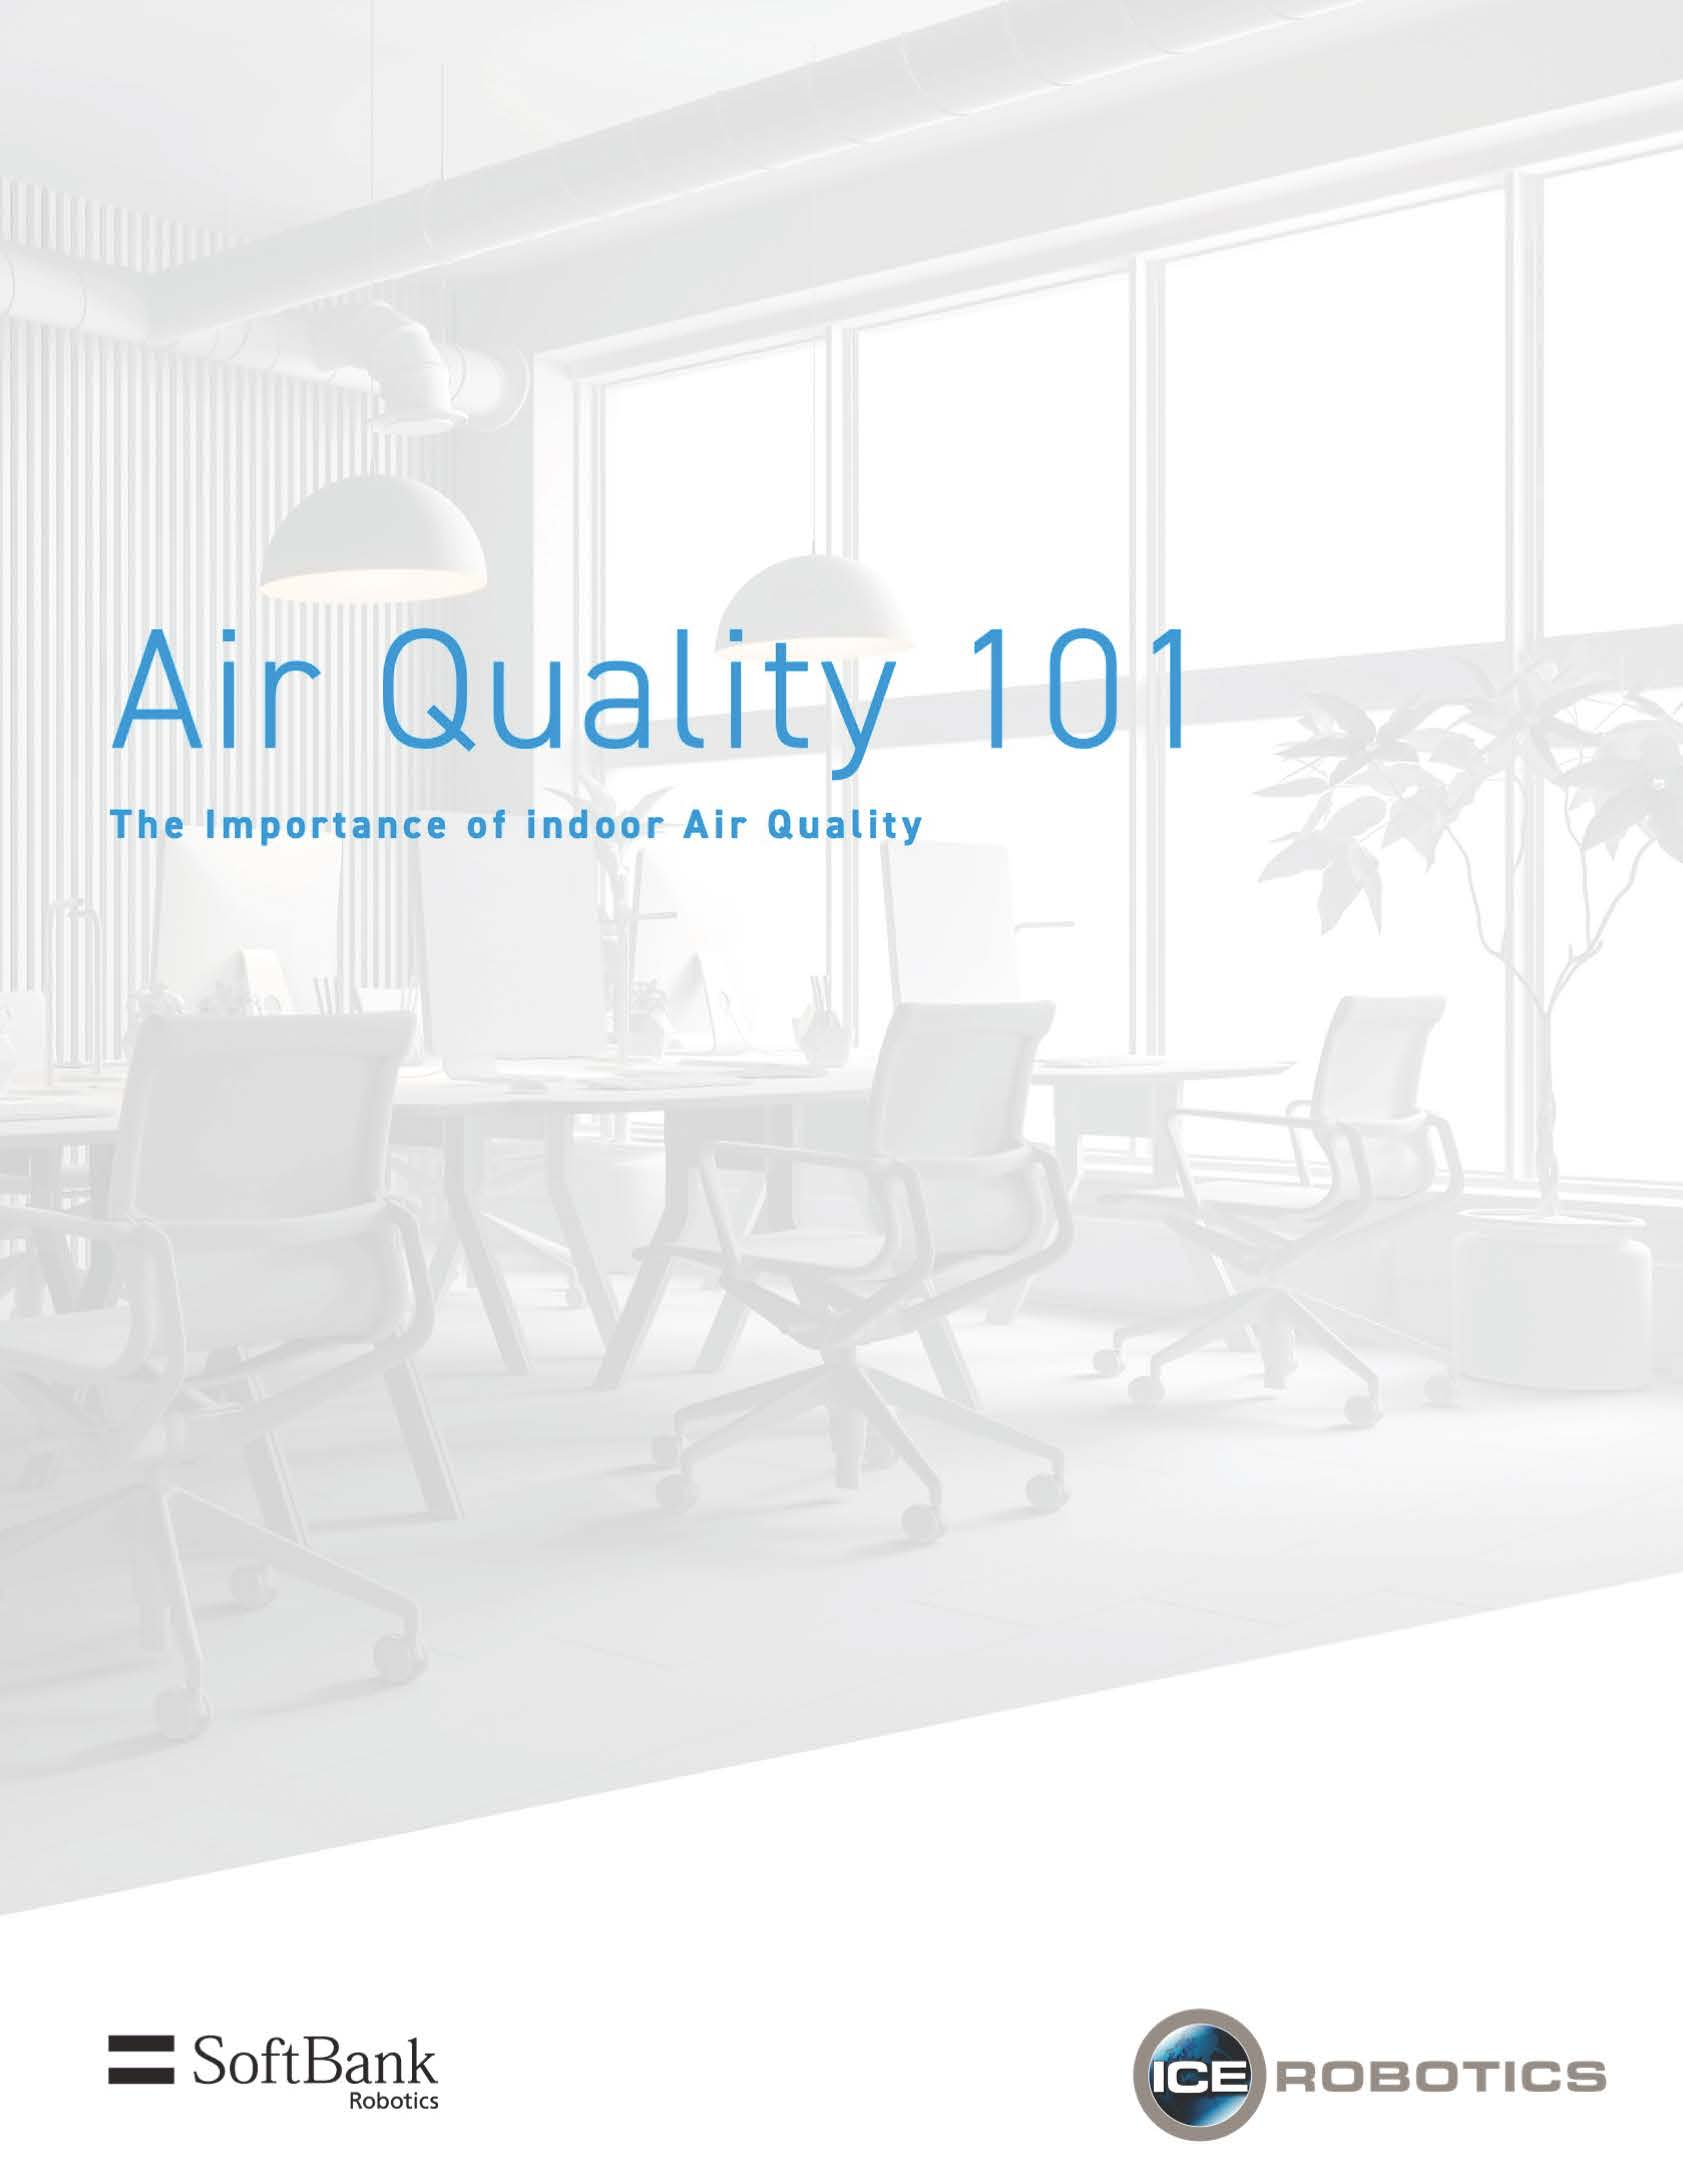 Air Quality 101: The Importance of Indoor Air Quality